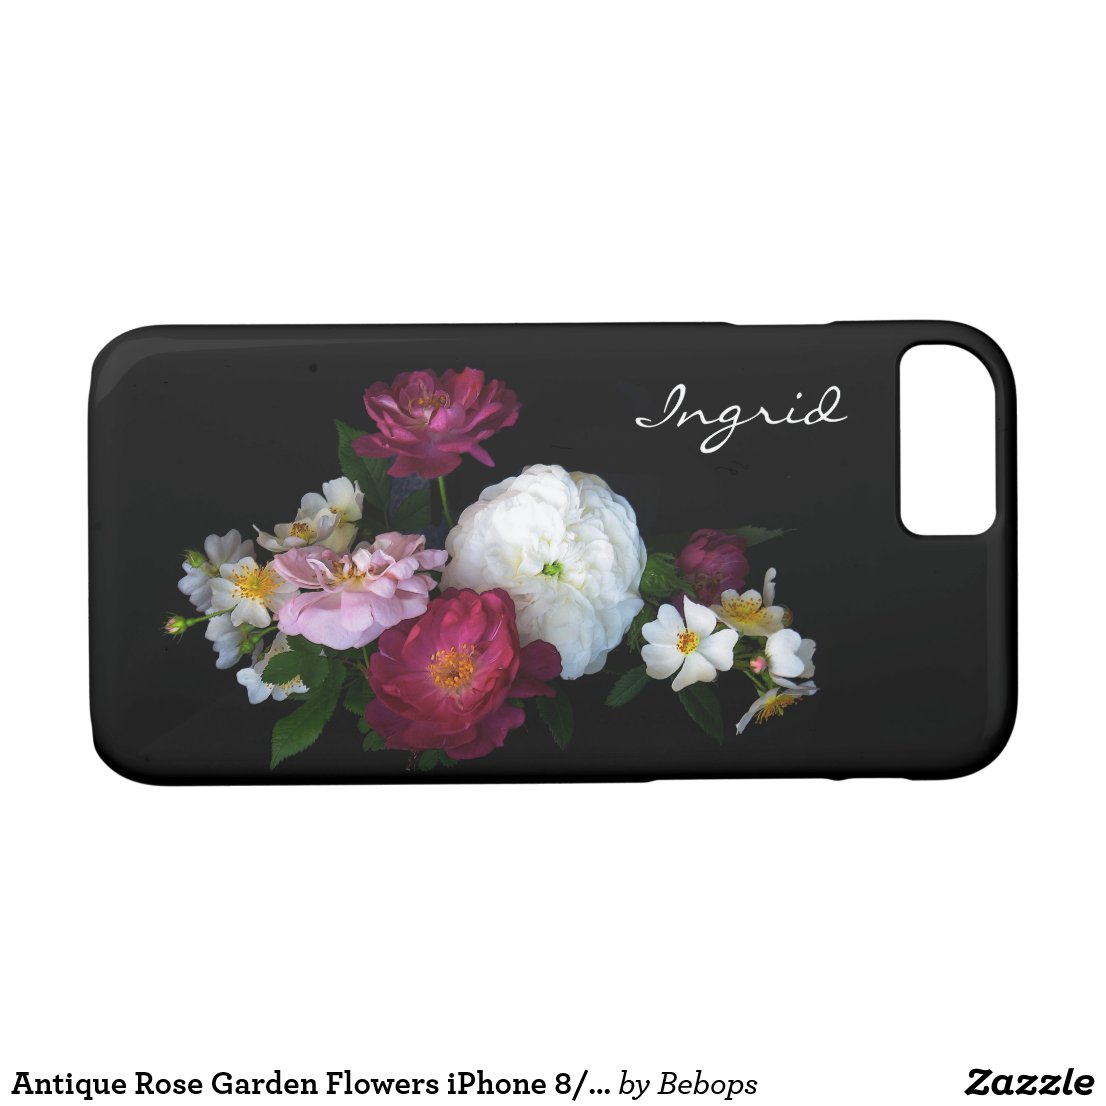 Antique Rose Garden Flowers iPhone 7 Case